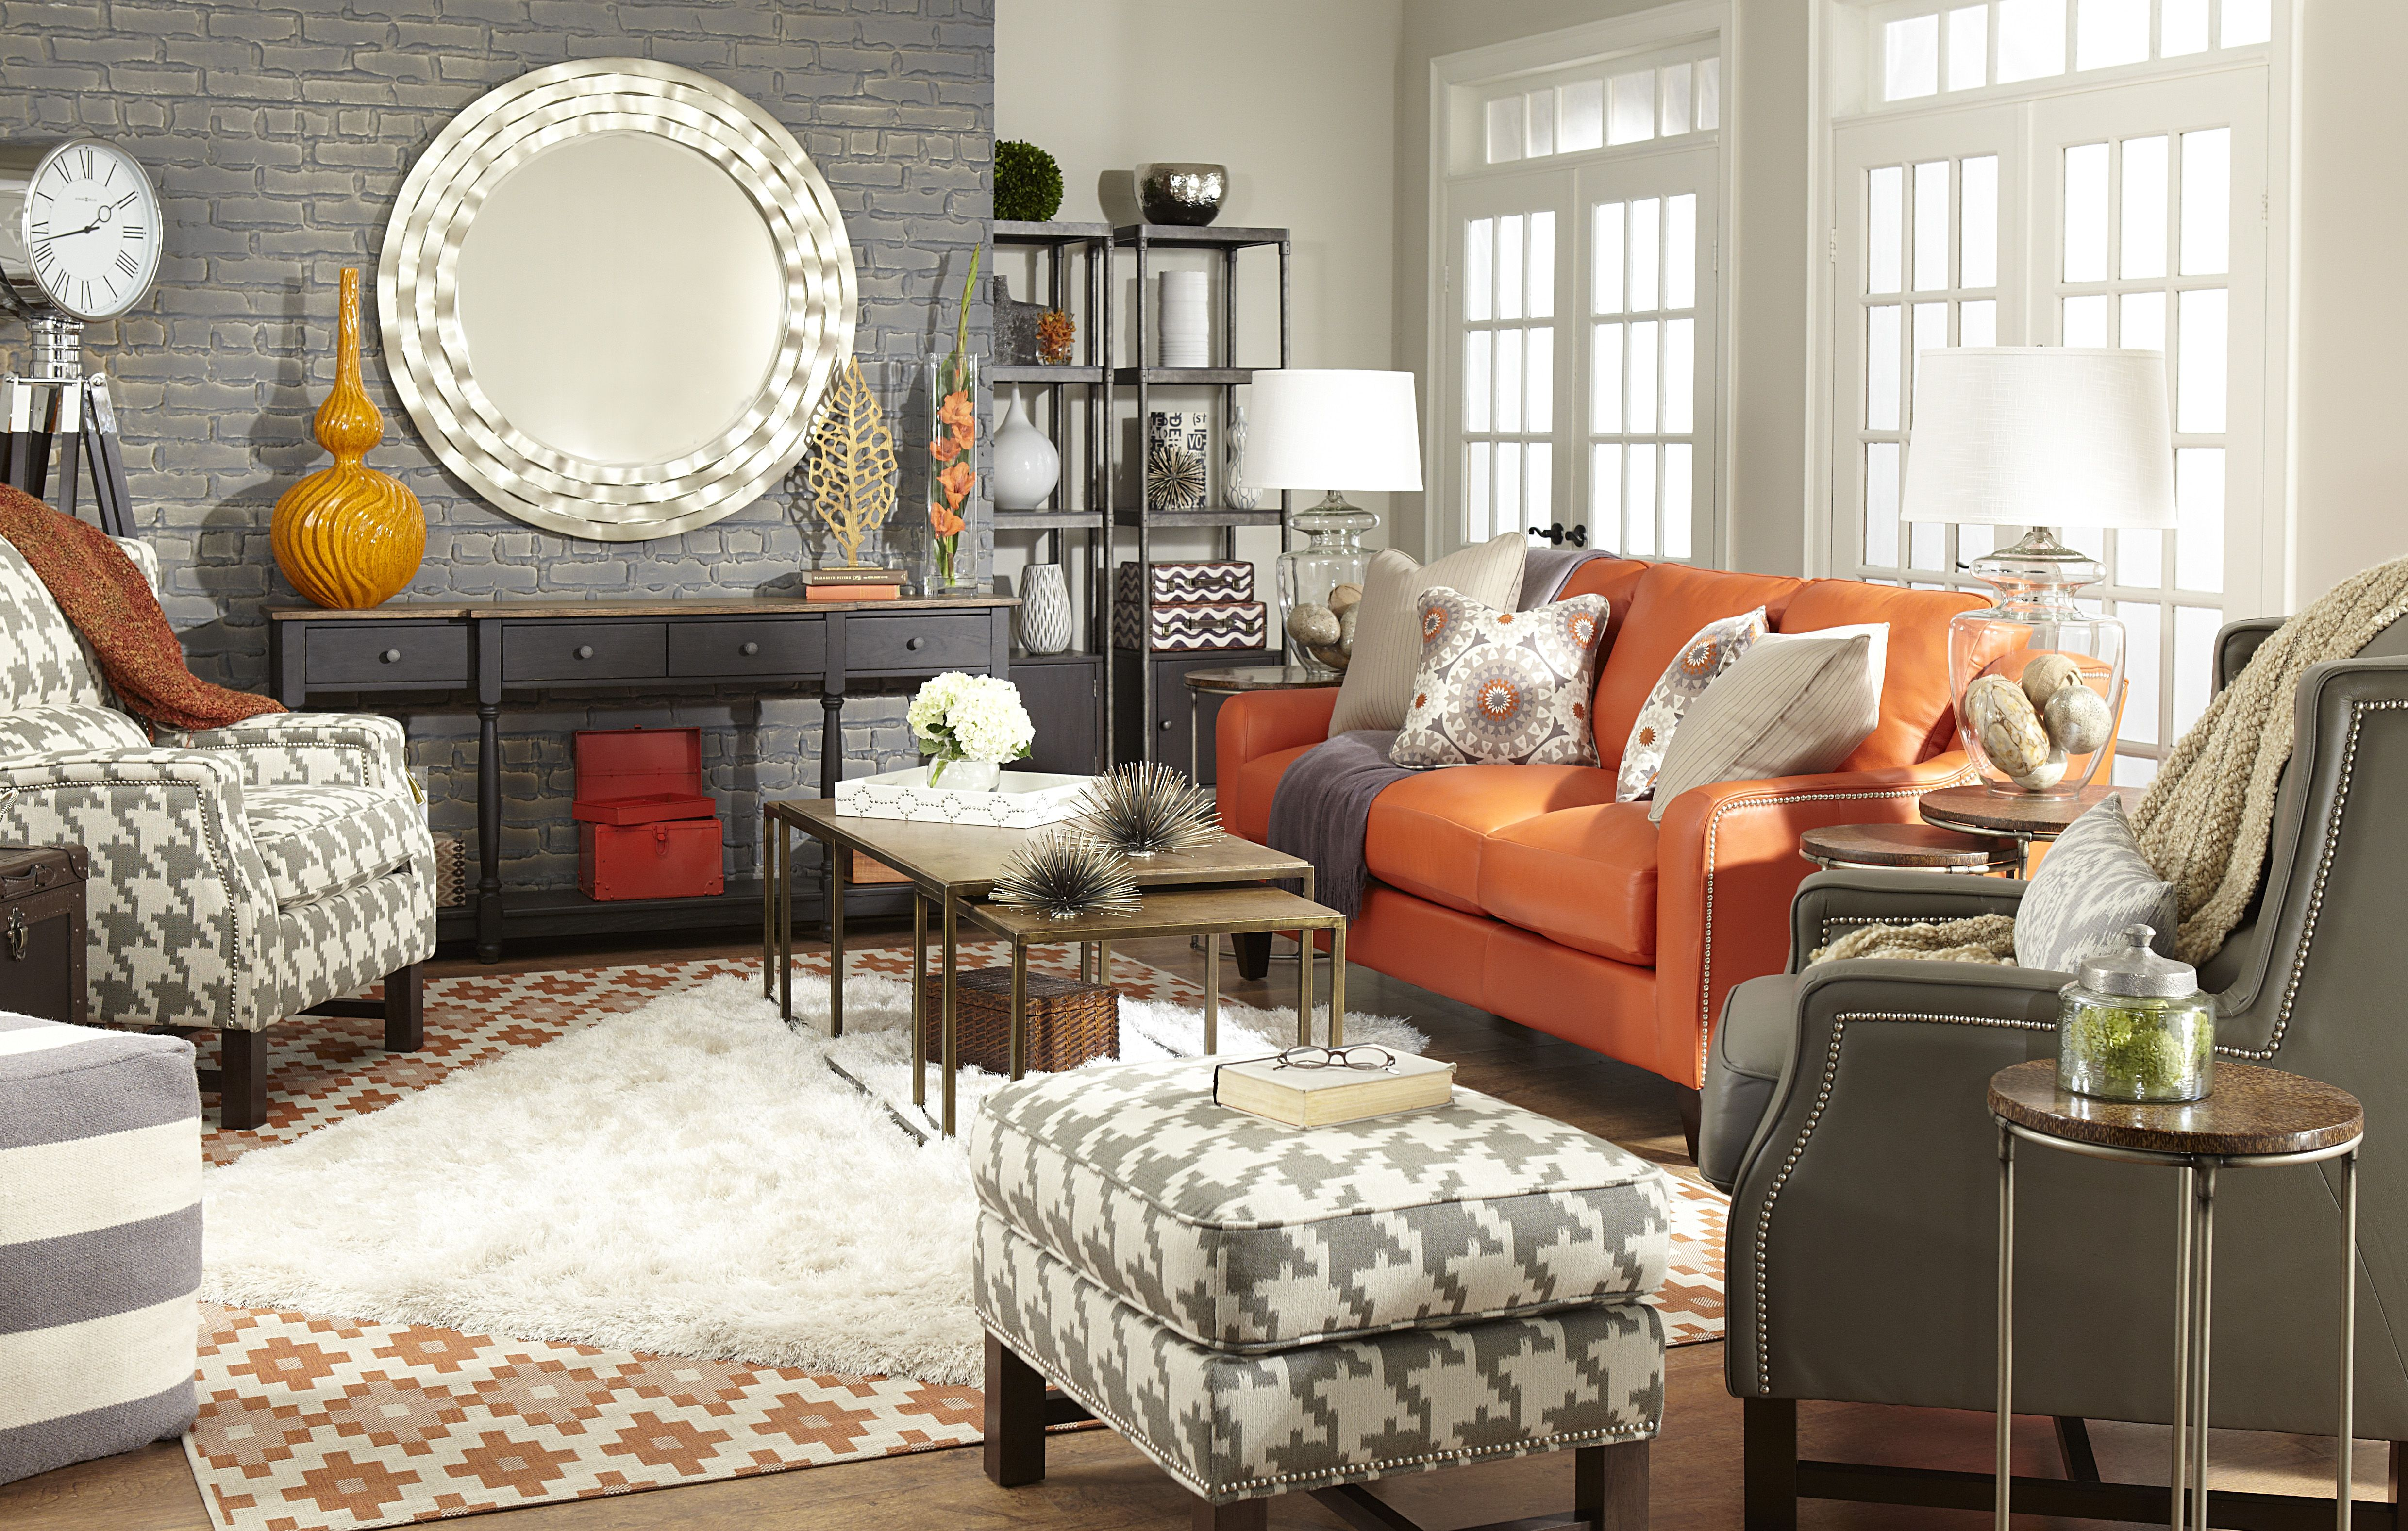 Pin On Eclectic Bright #orange #and #grey #living #room #decor